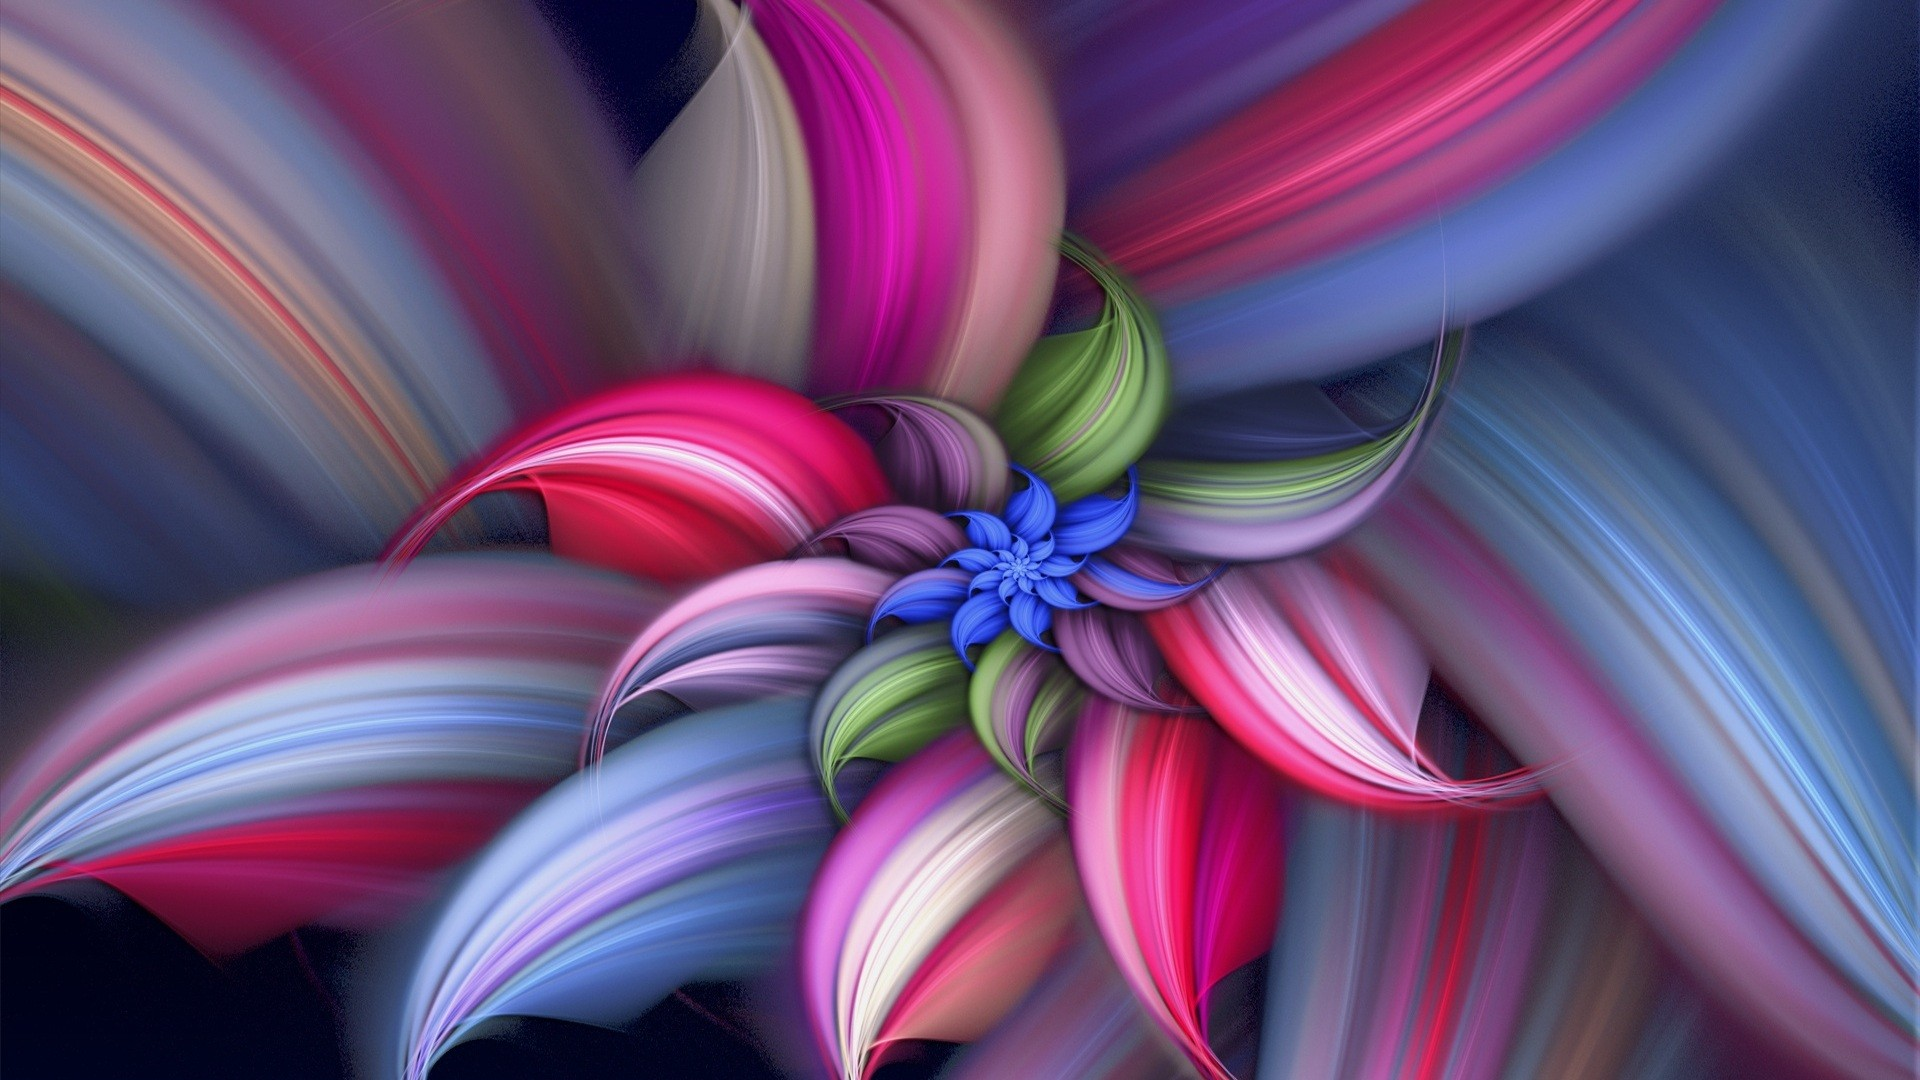 15 Abstract Floral Vector Design Images